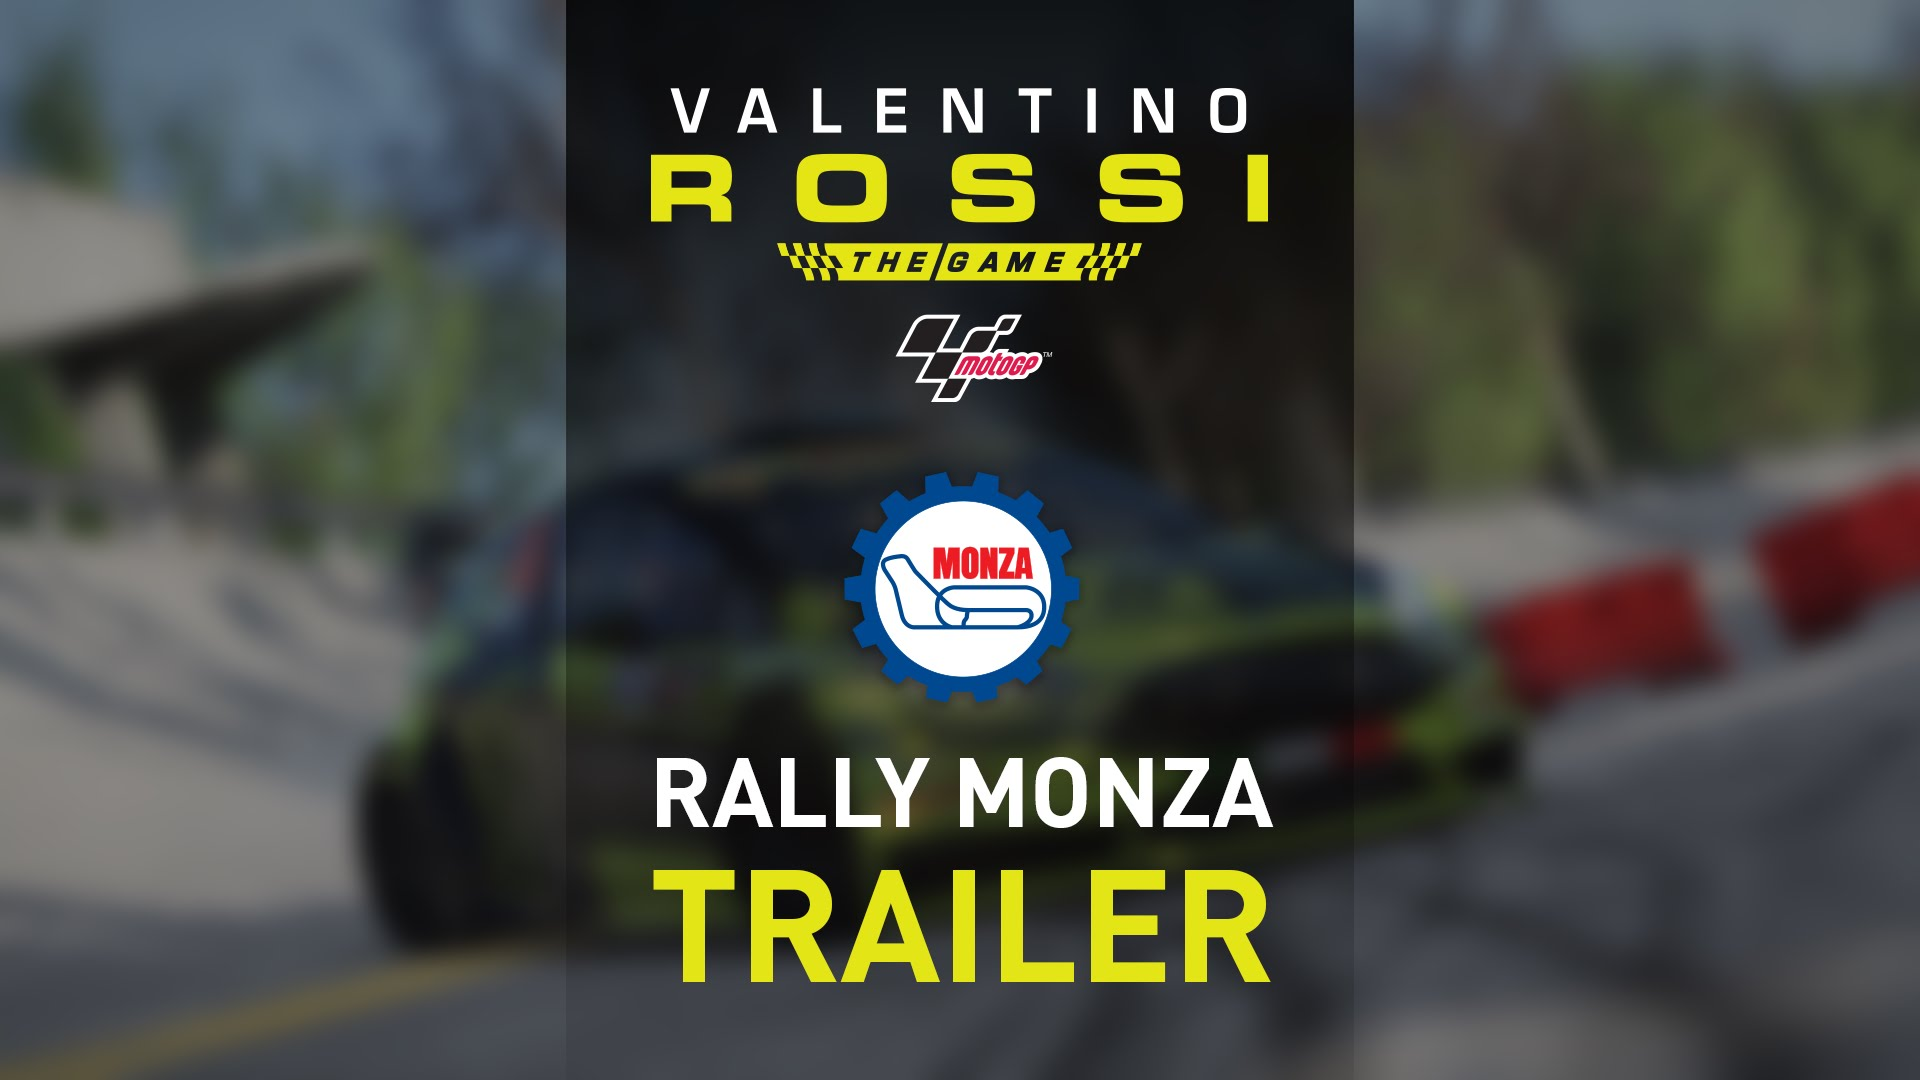 Valentino Rossi The Game - Monza Rally Trailer